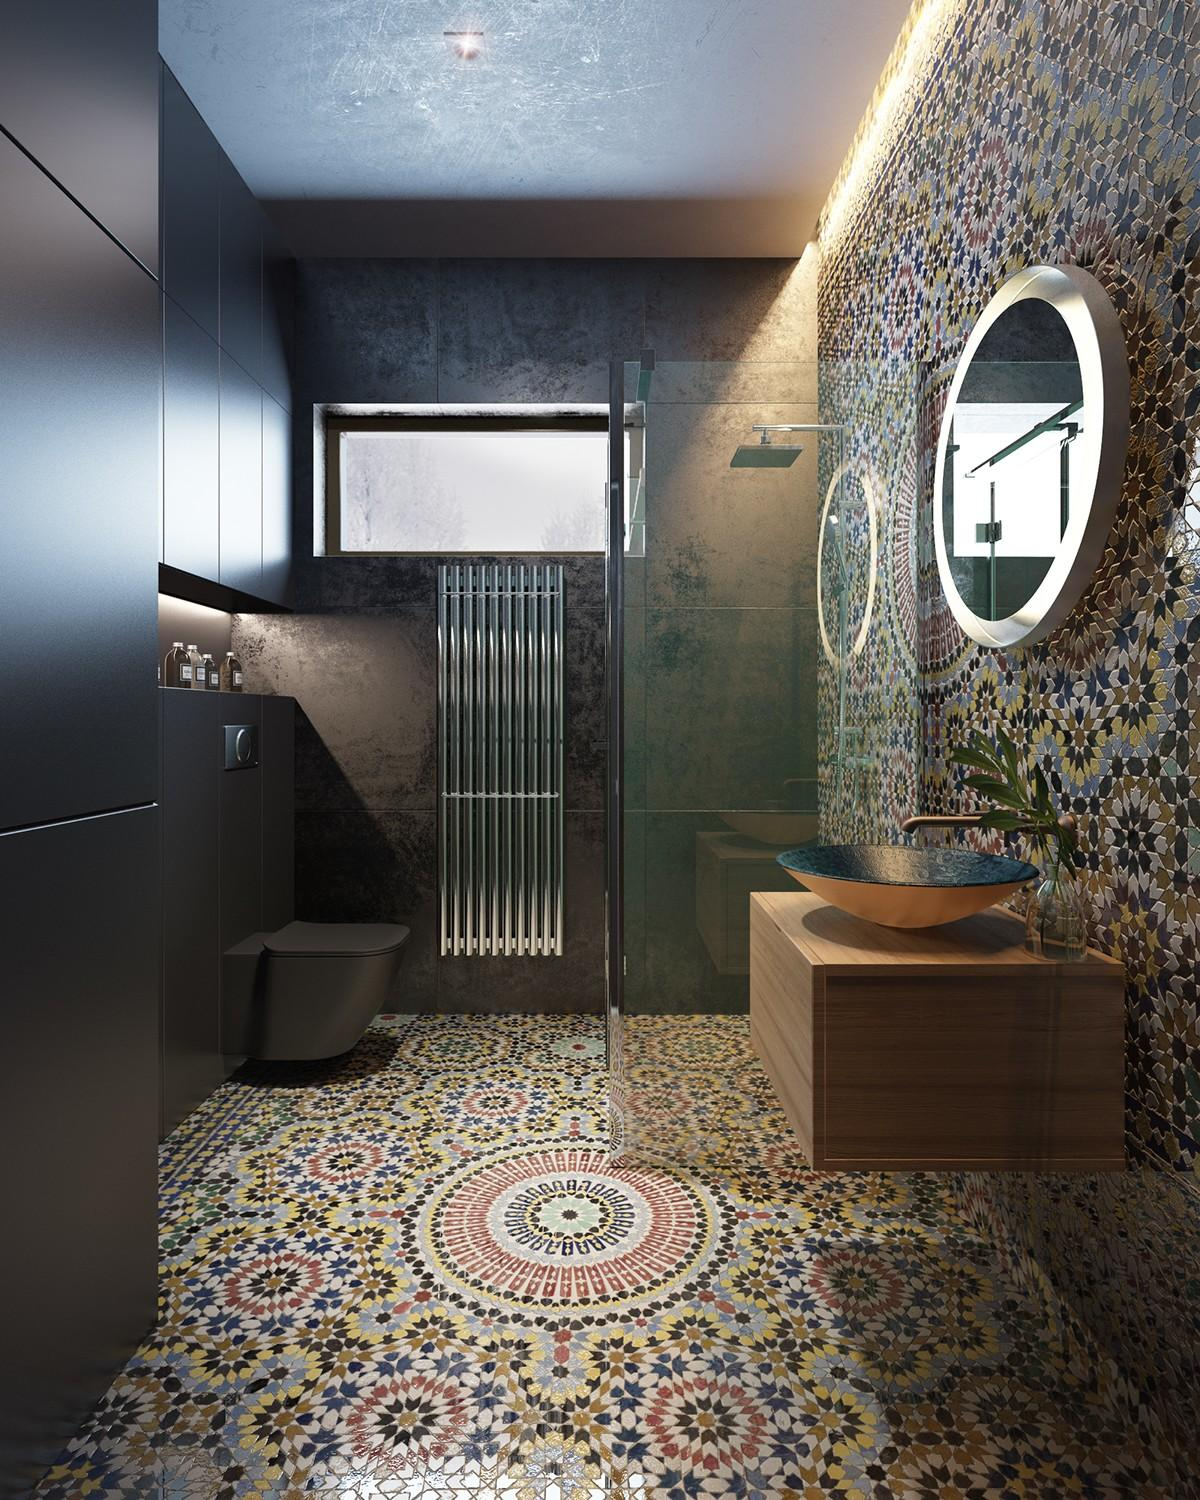 Modern bathroom with mosaic tiles on walls and floors - Moroccan ...